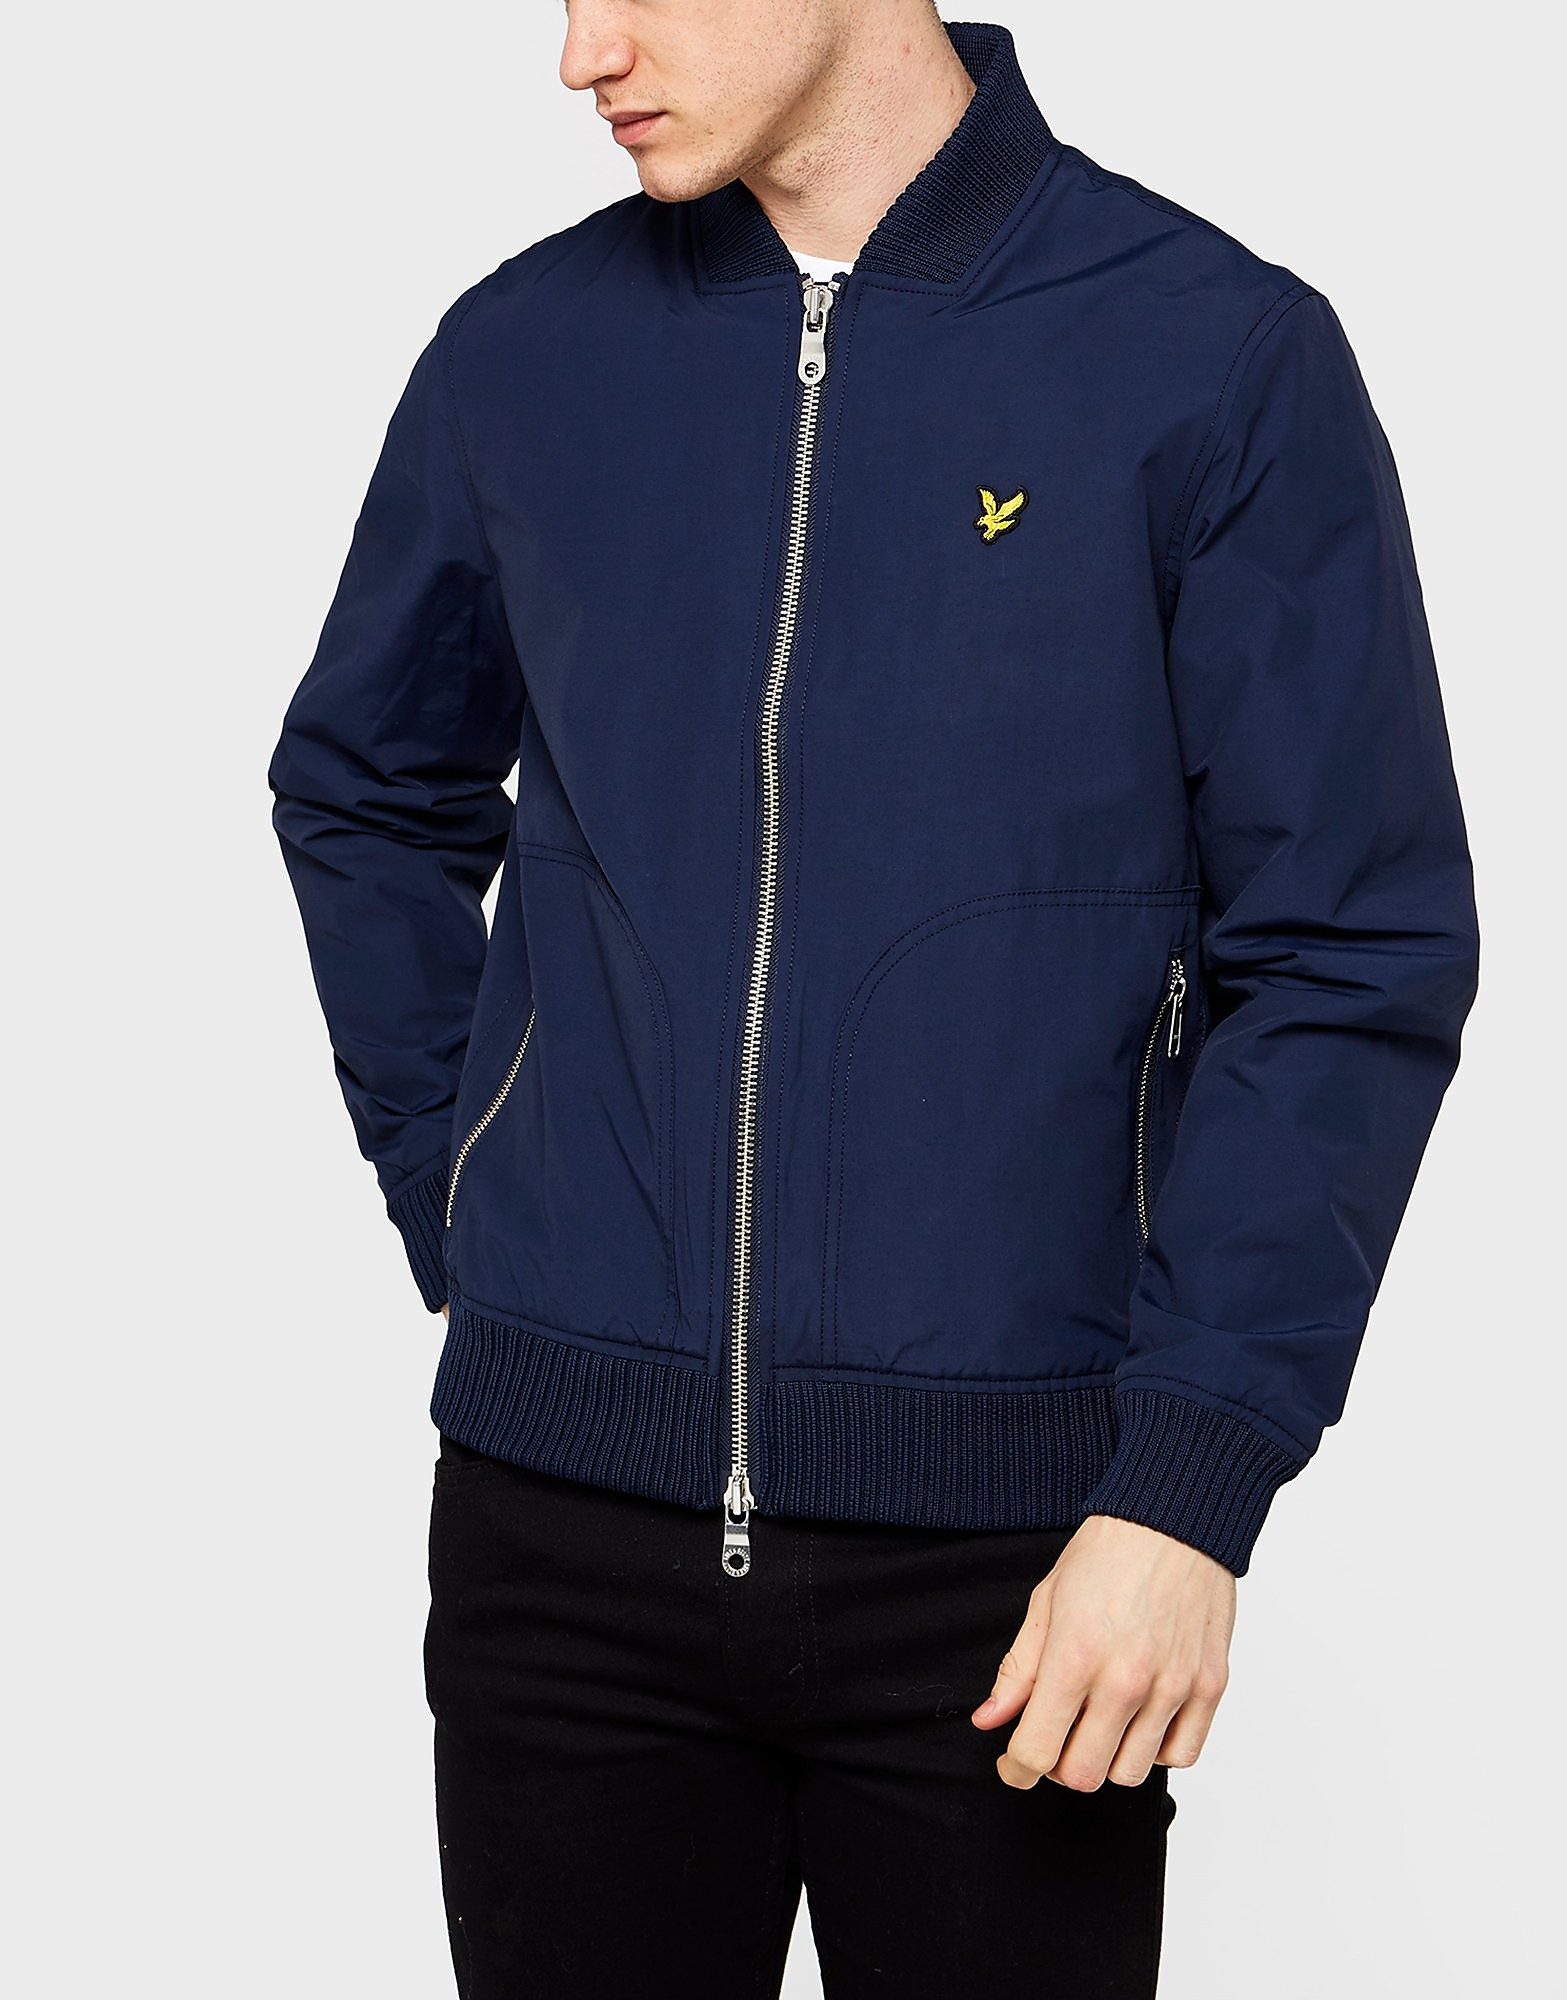 Lyle & Scott Nylon Bomber Jacket